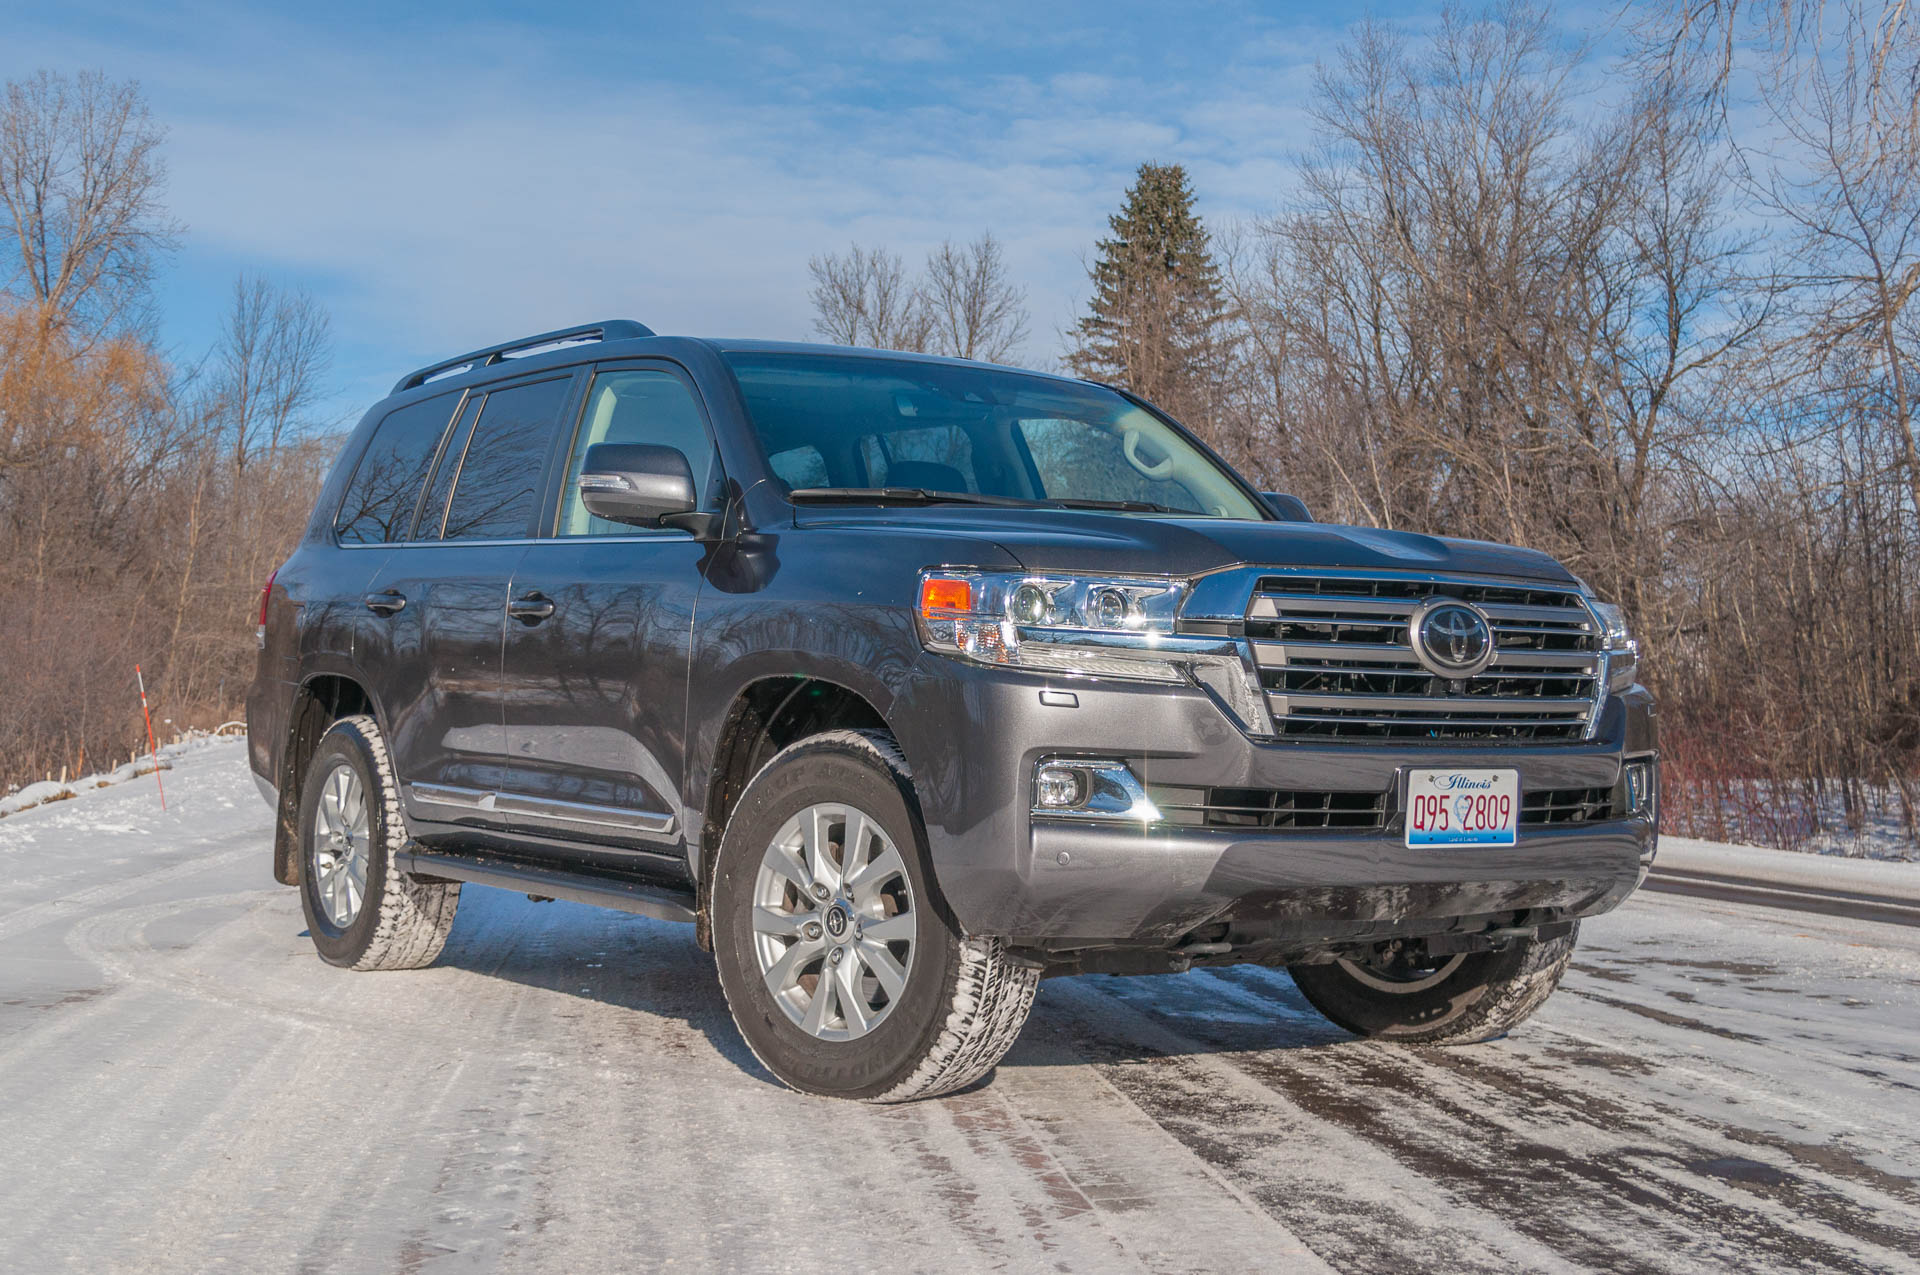 8 things you need to know about the 2017 Toyota Land Cruiser